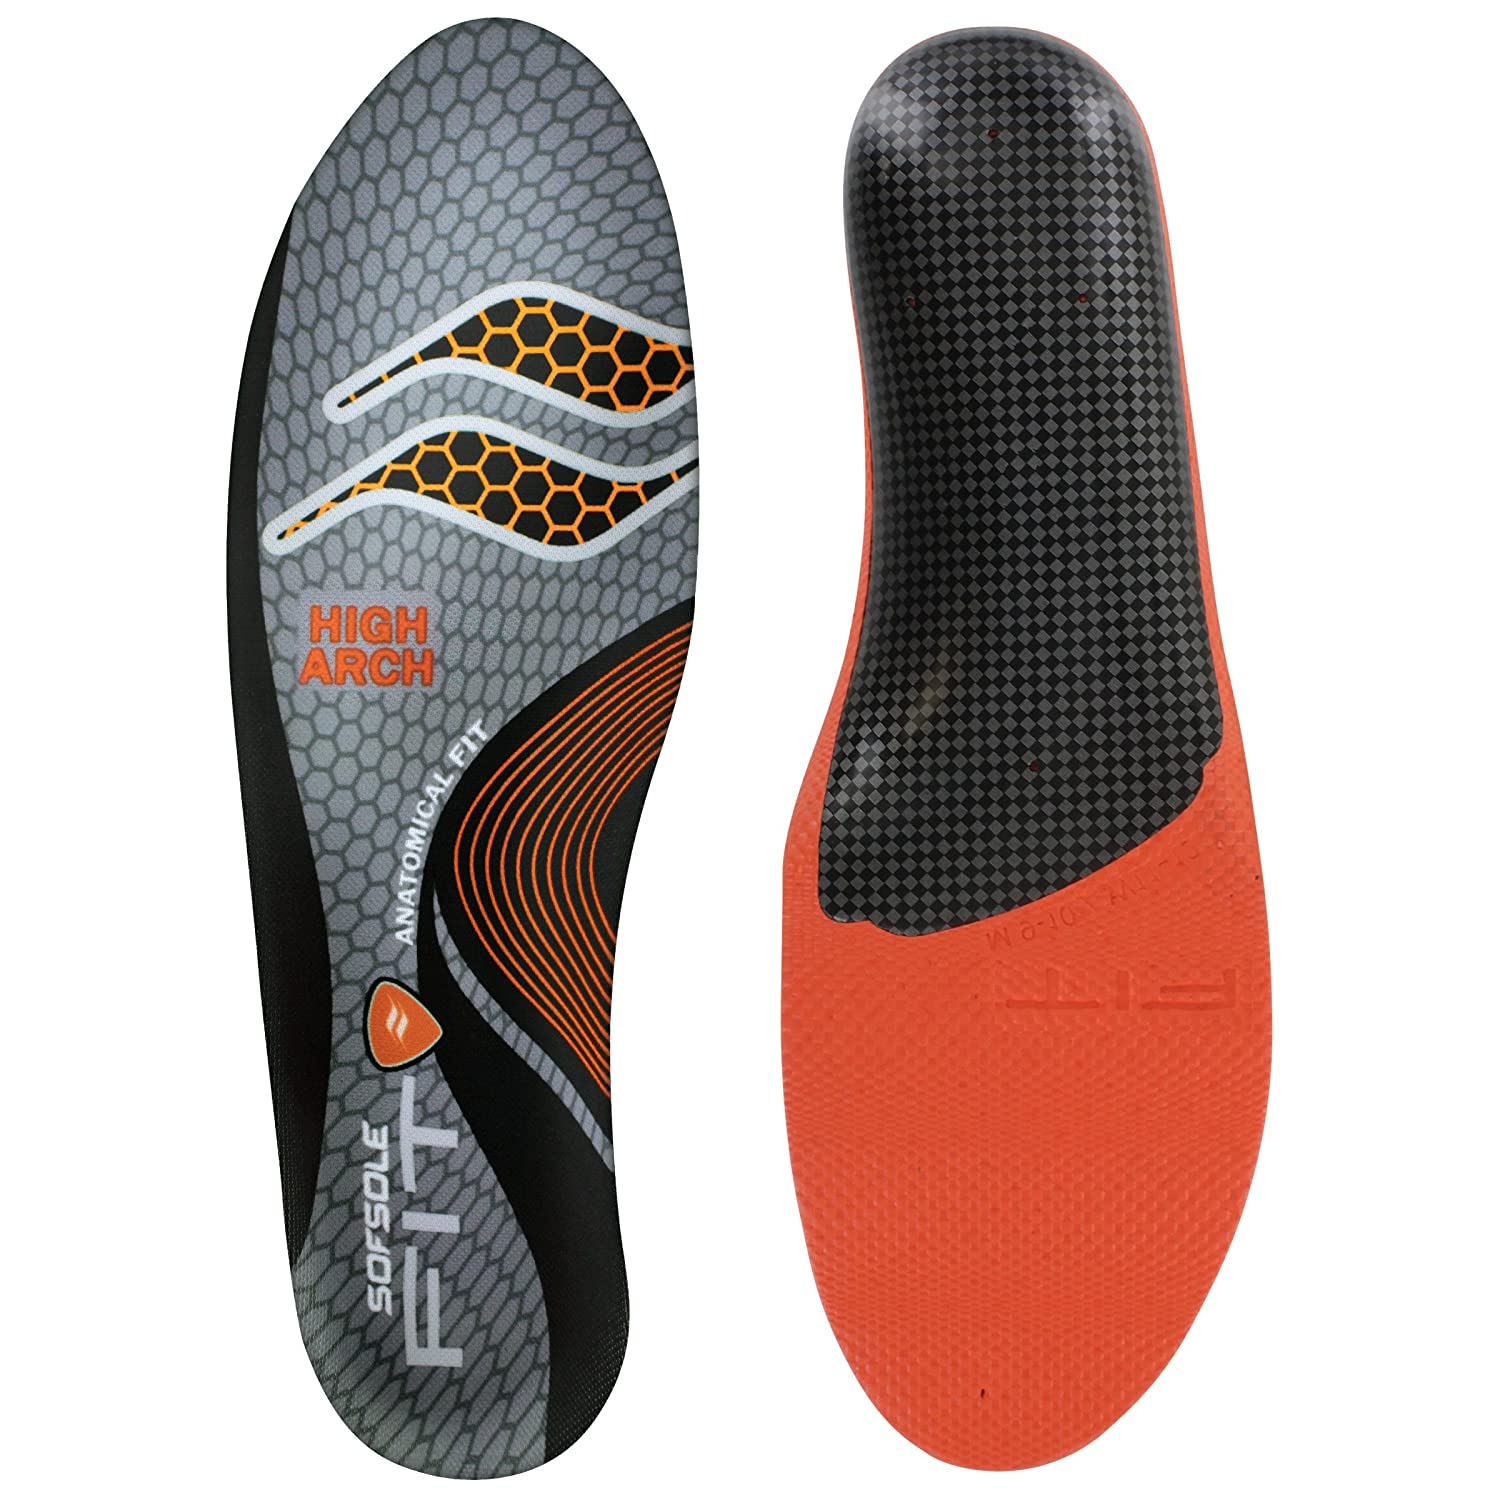 Sof Sole Fit Performance insoles